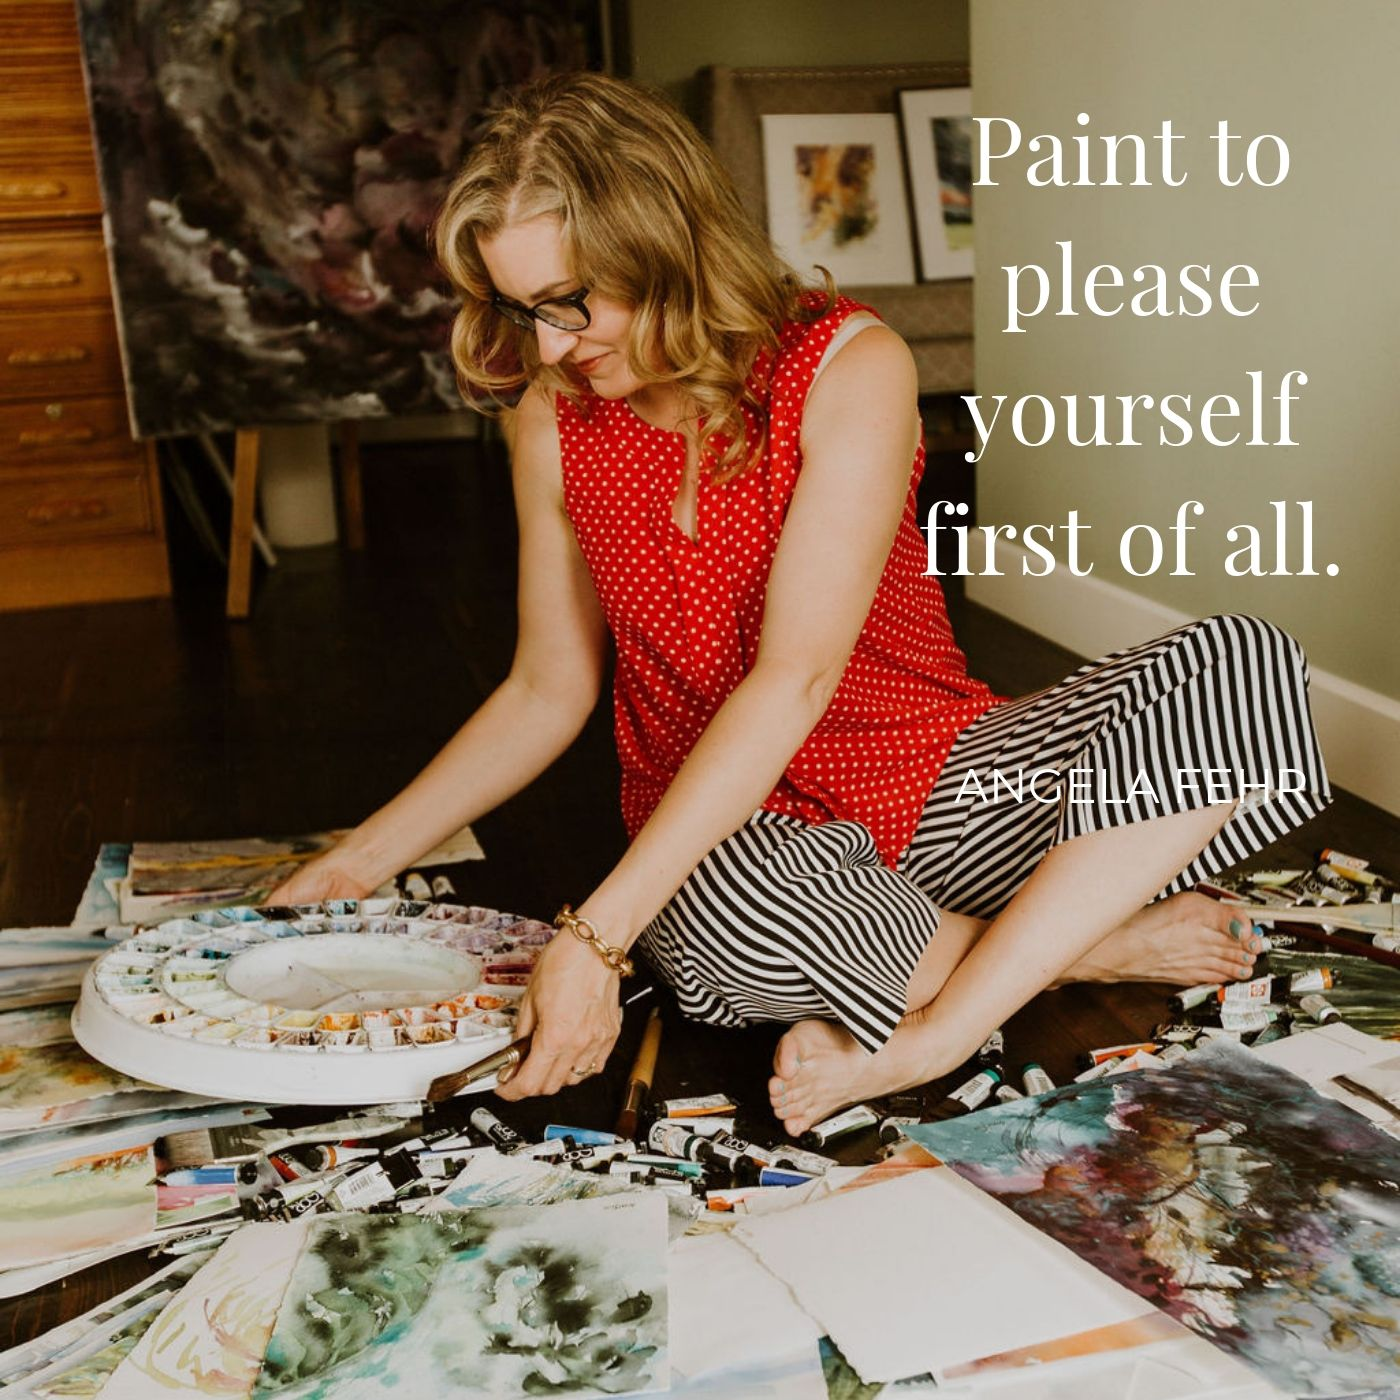 paint to please yourself.jpg